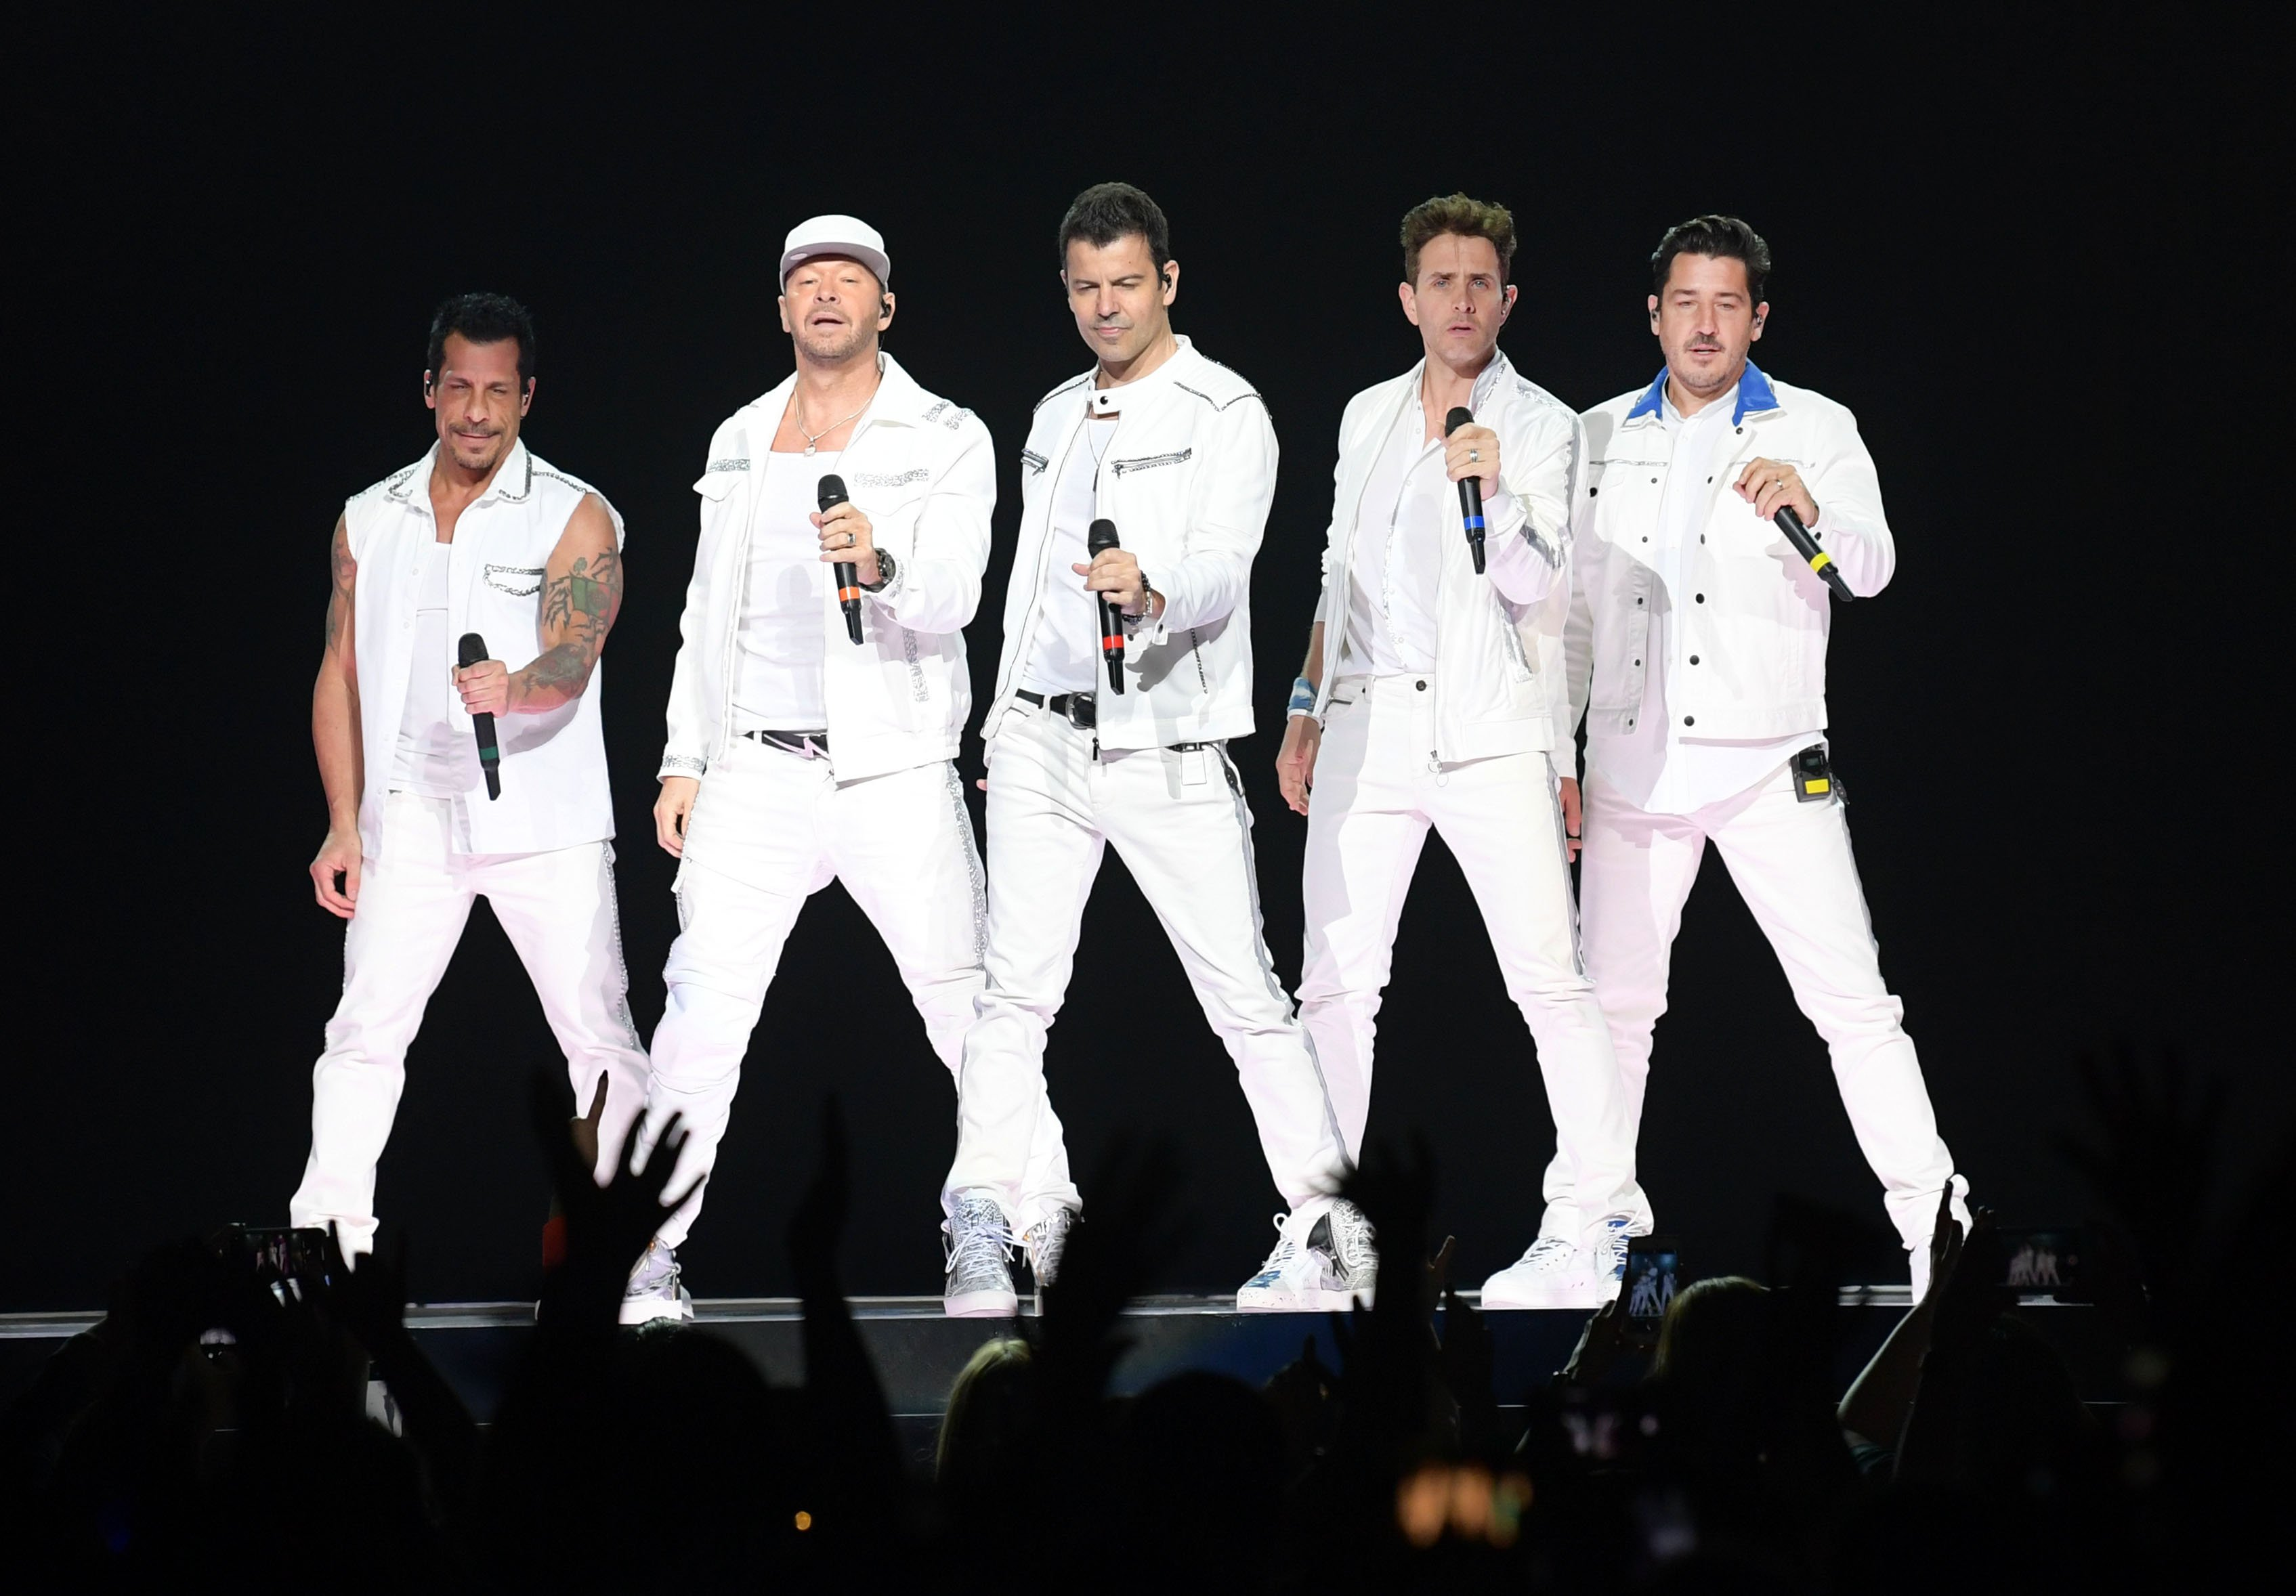 Danny Wood, Donnie Wahlberg, Jordan Knight, Joey McIntyre and Jonathan Knight of the musical group New Kids On The Block perform at Bridgestone Arena on May 09, 2019, in Nashville, Tennessee. | Source: Getty Images.